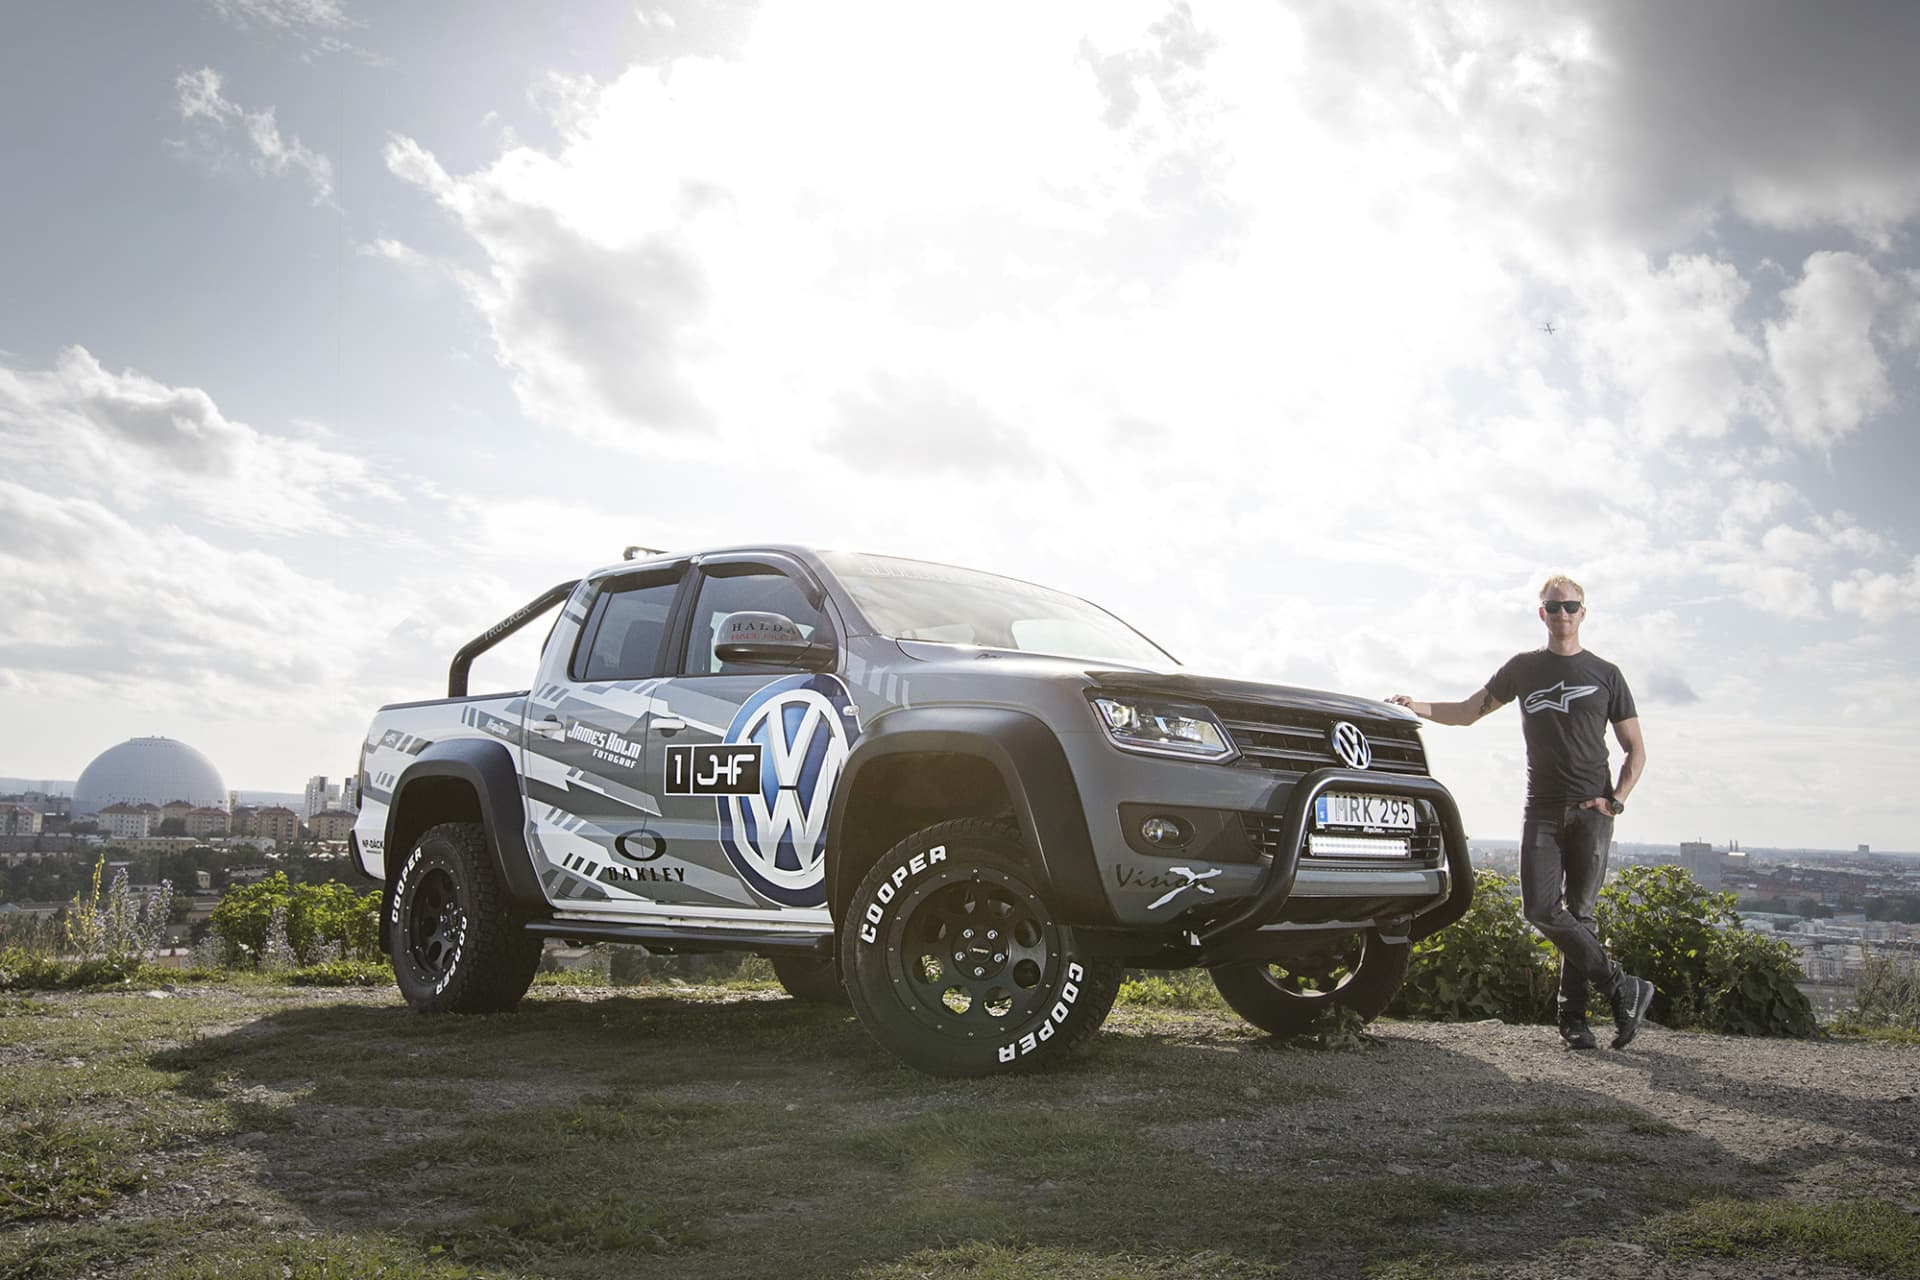 The other Amarok I had was modified with Delta 4x4 parts as well as lights from Vision X. The decor was inspired by the Volkswagen WRC car and designed by graphic artist and graffiti painter Gorm Boberg from Gothenburg.